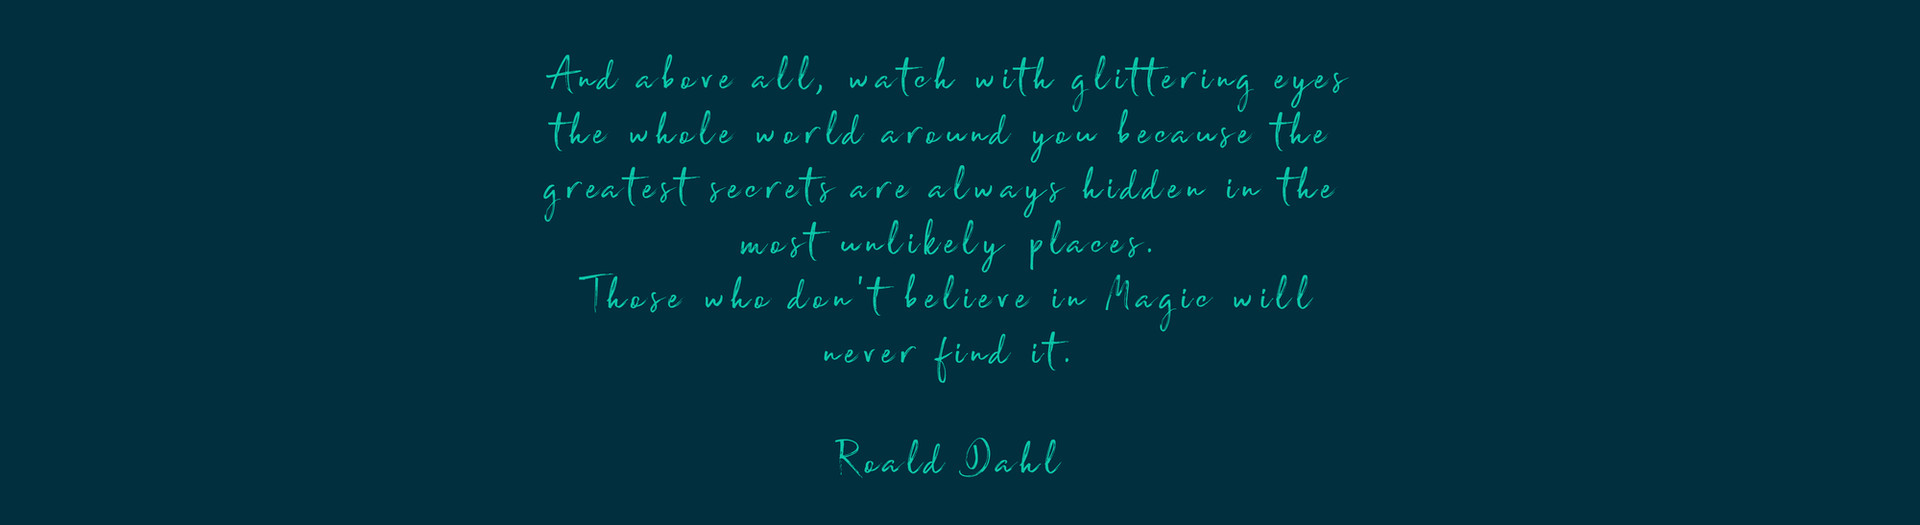 ROALD DAHL MAGIC QUOTE-CROP copy.jpg